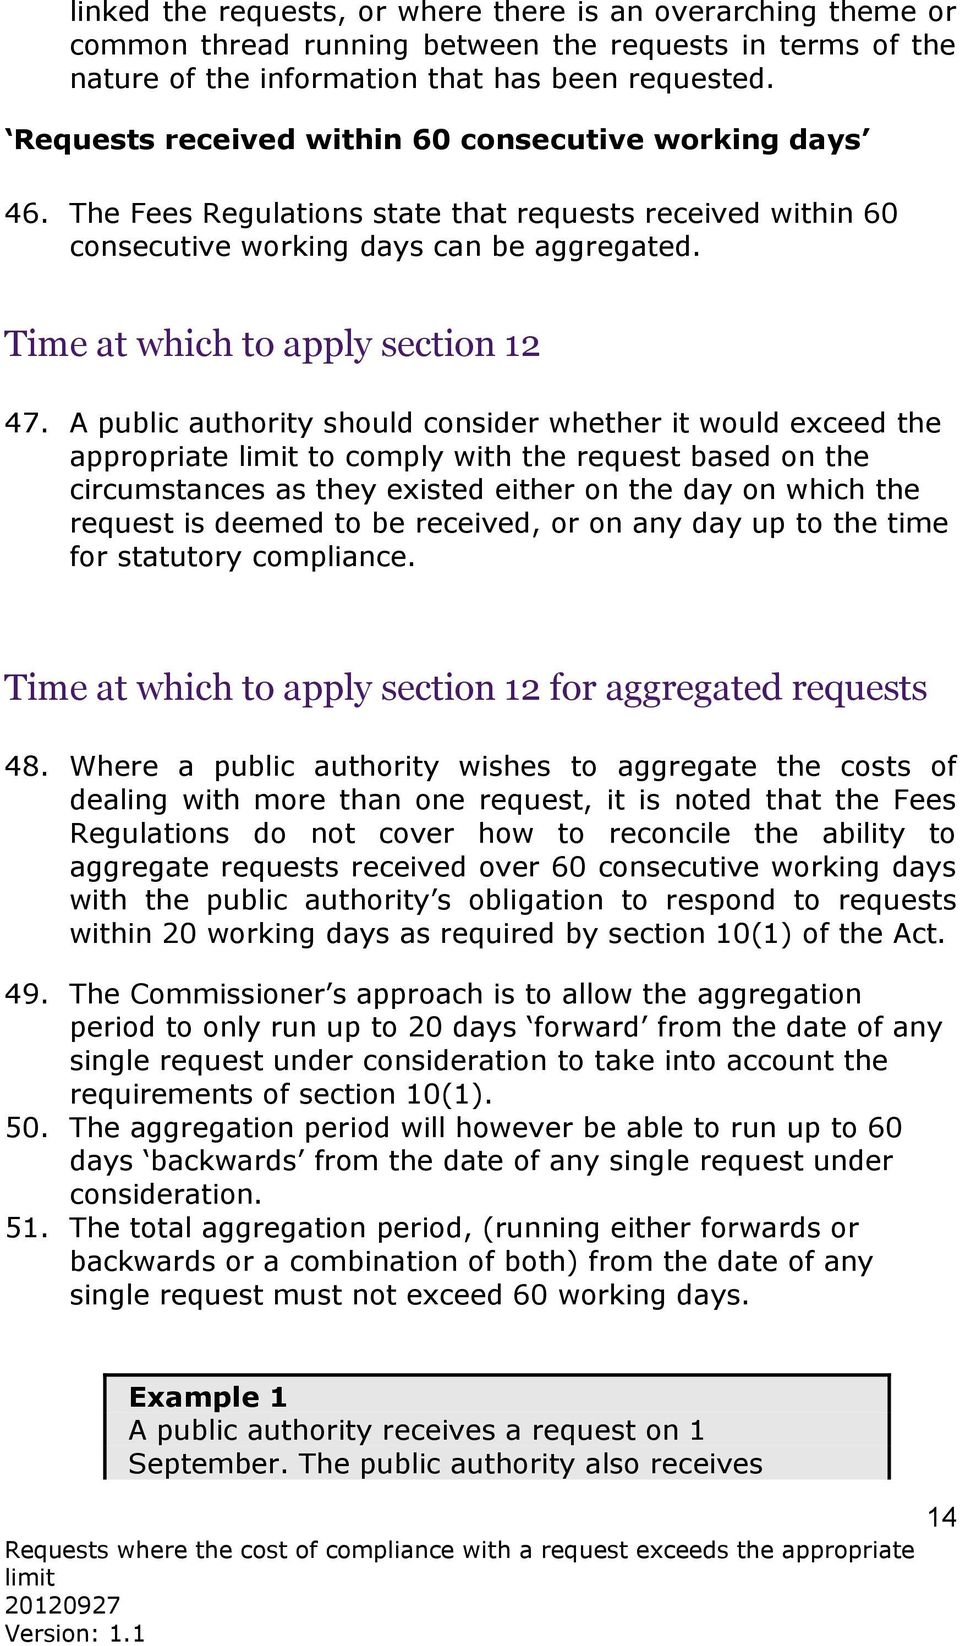 A public authority should consider whether it would exceed the appropriate to comply with the request based on the circumstances as they existed either on the day on which the request is deemed to be